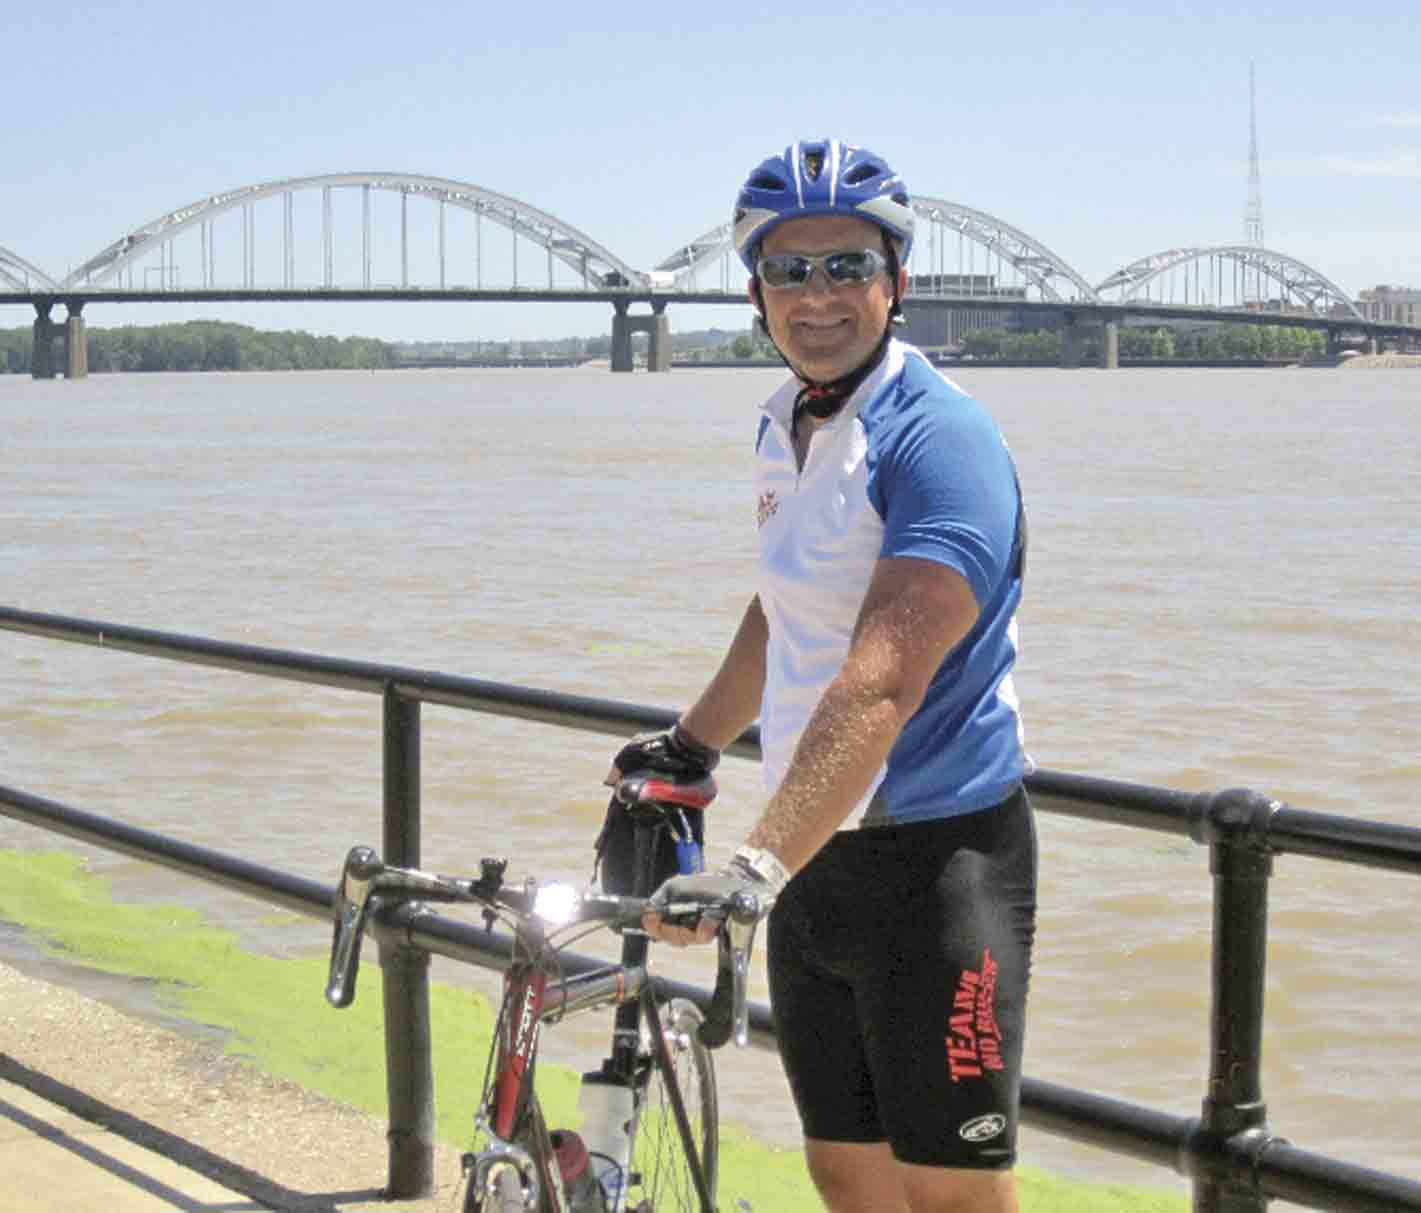 Jason Halverson stands in front of the Mississippi River in Davenport after completing a past RAGBRAI ride. Next week, the South Winneshiek Elementary/Middle School principal will make his way across the state of Iowa for the 10th time on a route that includes stops in both his...